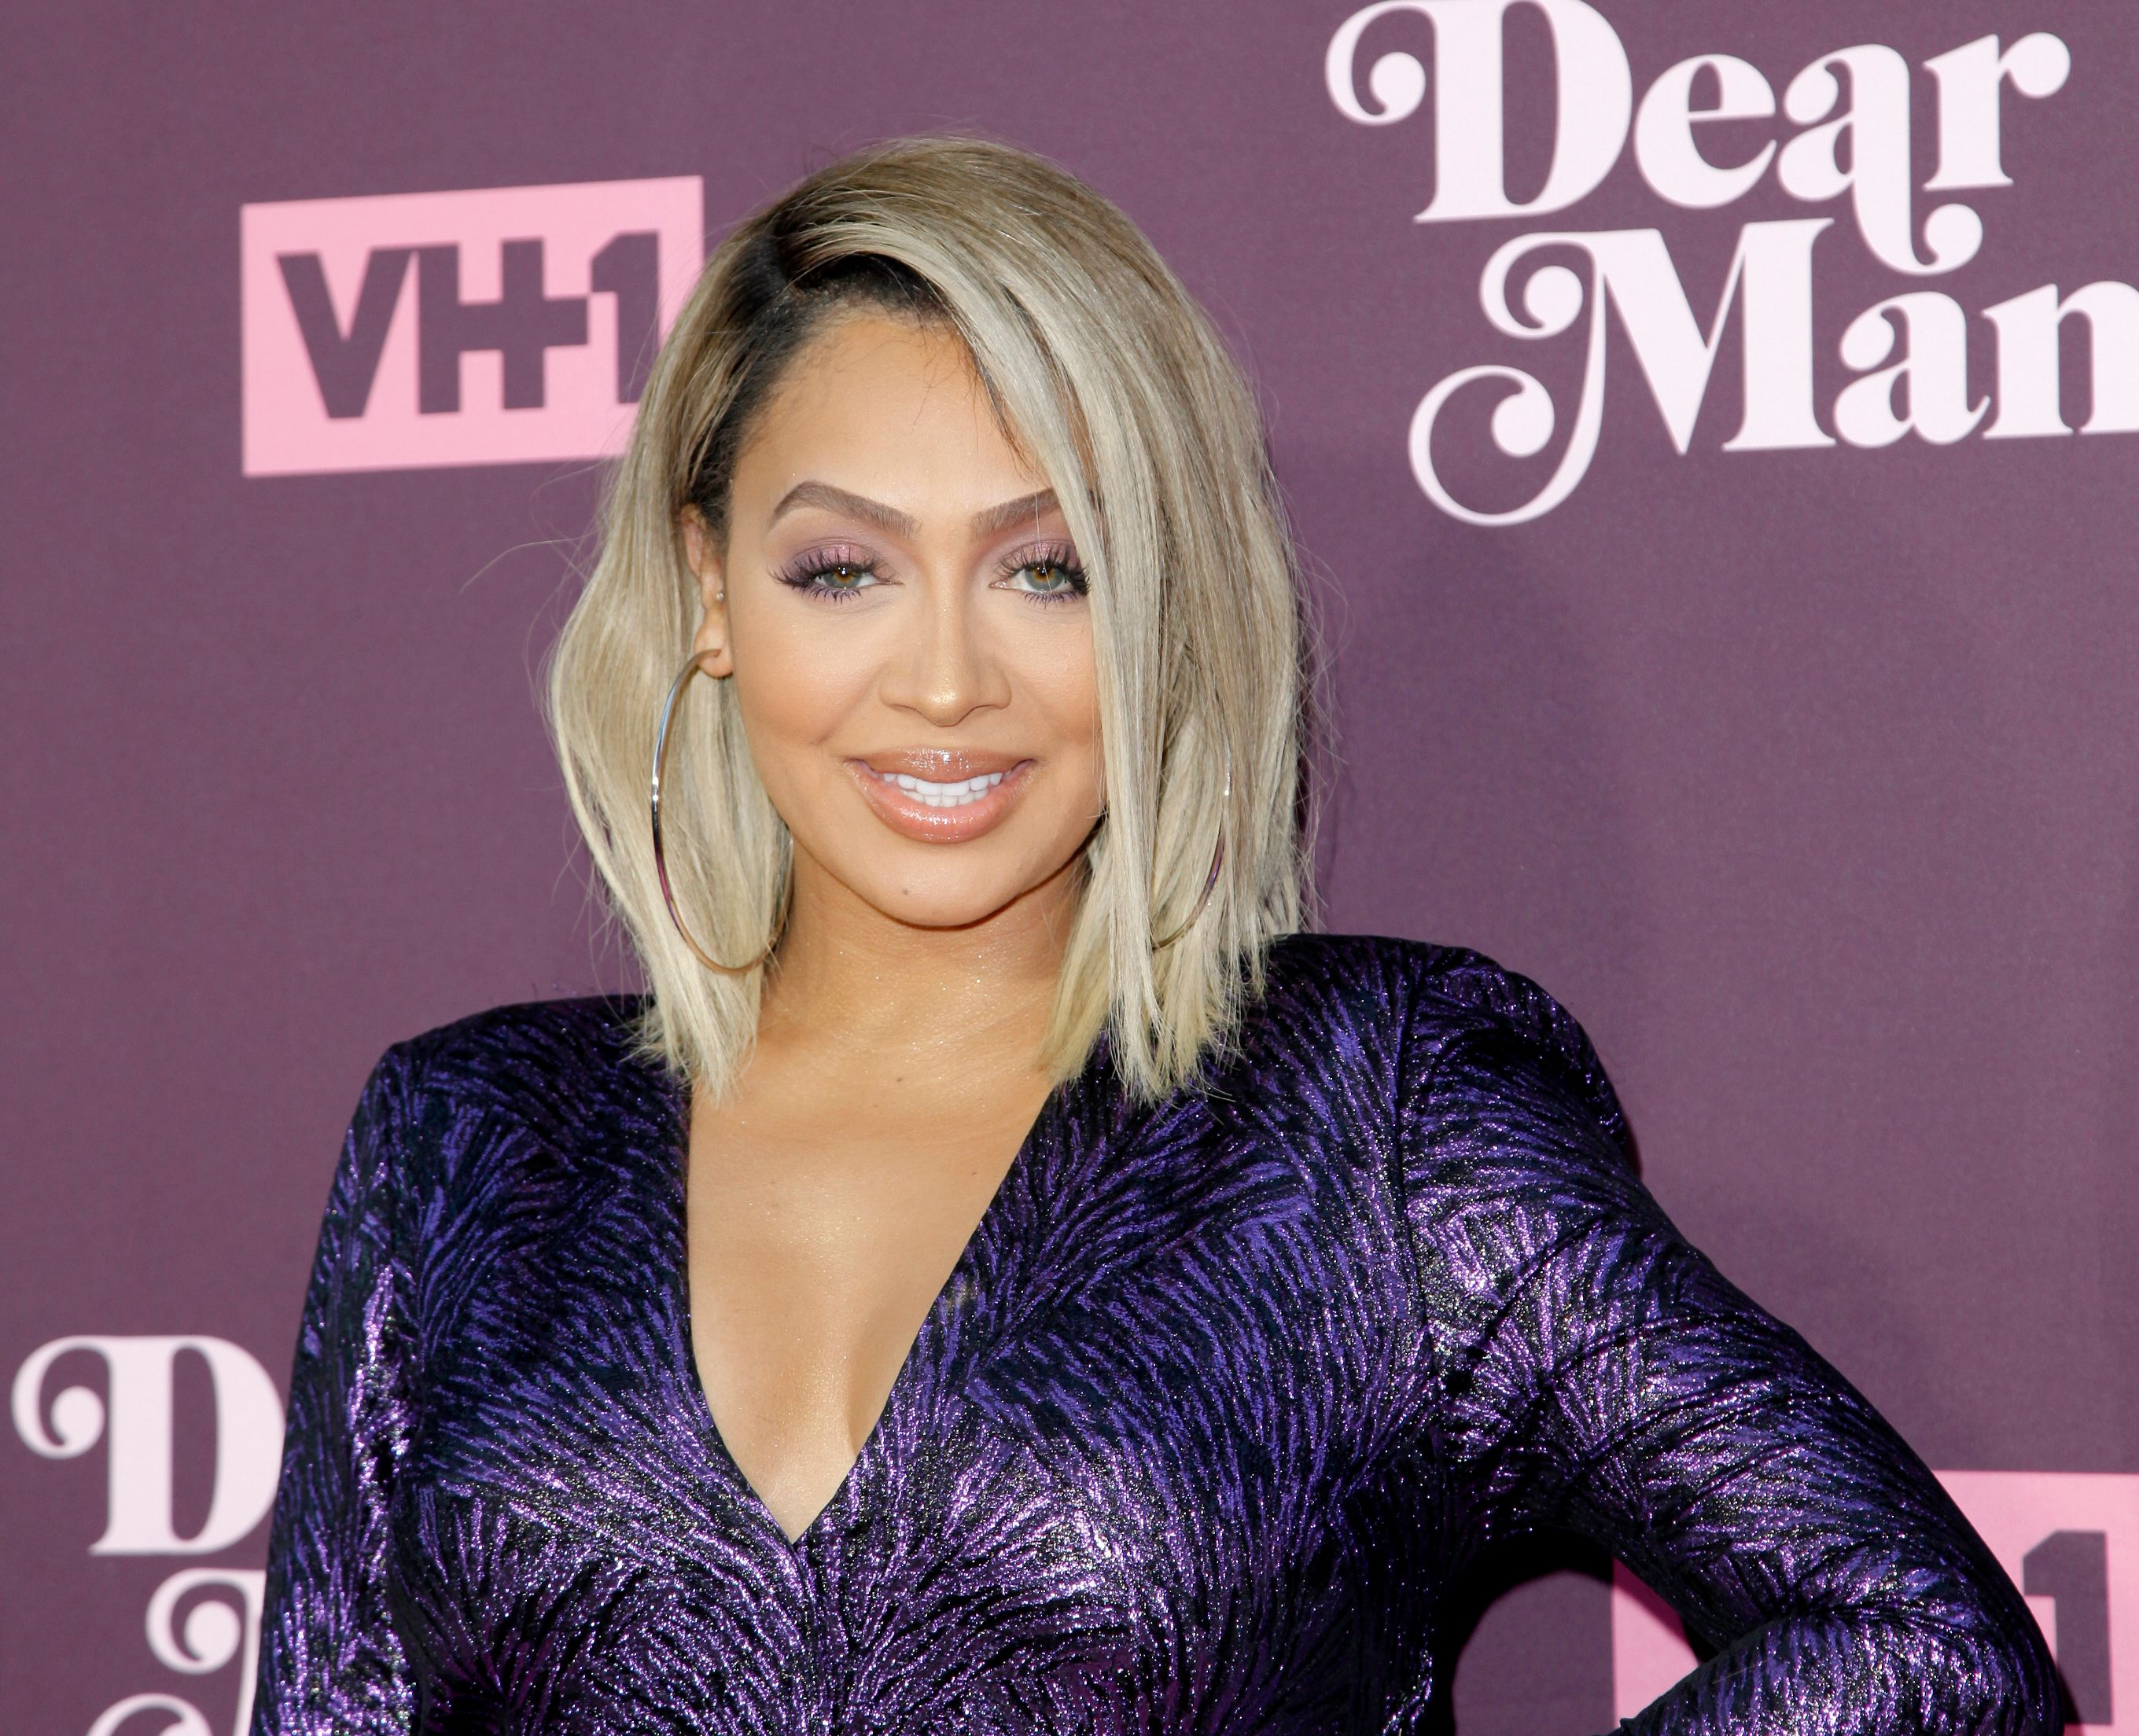 La La Anthony attends VH1's 3rd annual 'Dear Mama: A Love Letter To Moms' screening at The Theatre at Ace Hotel on May 3, 2018 | Photo: Getty Images